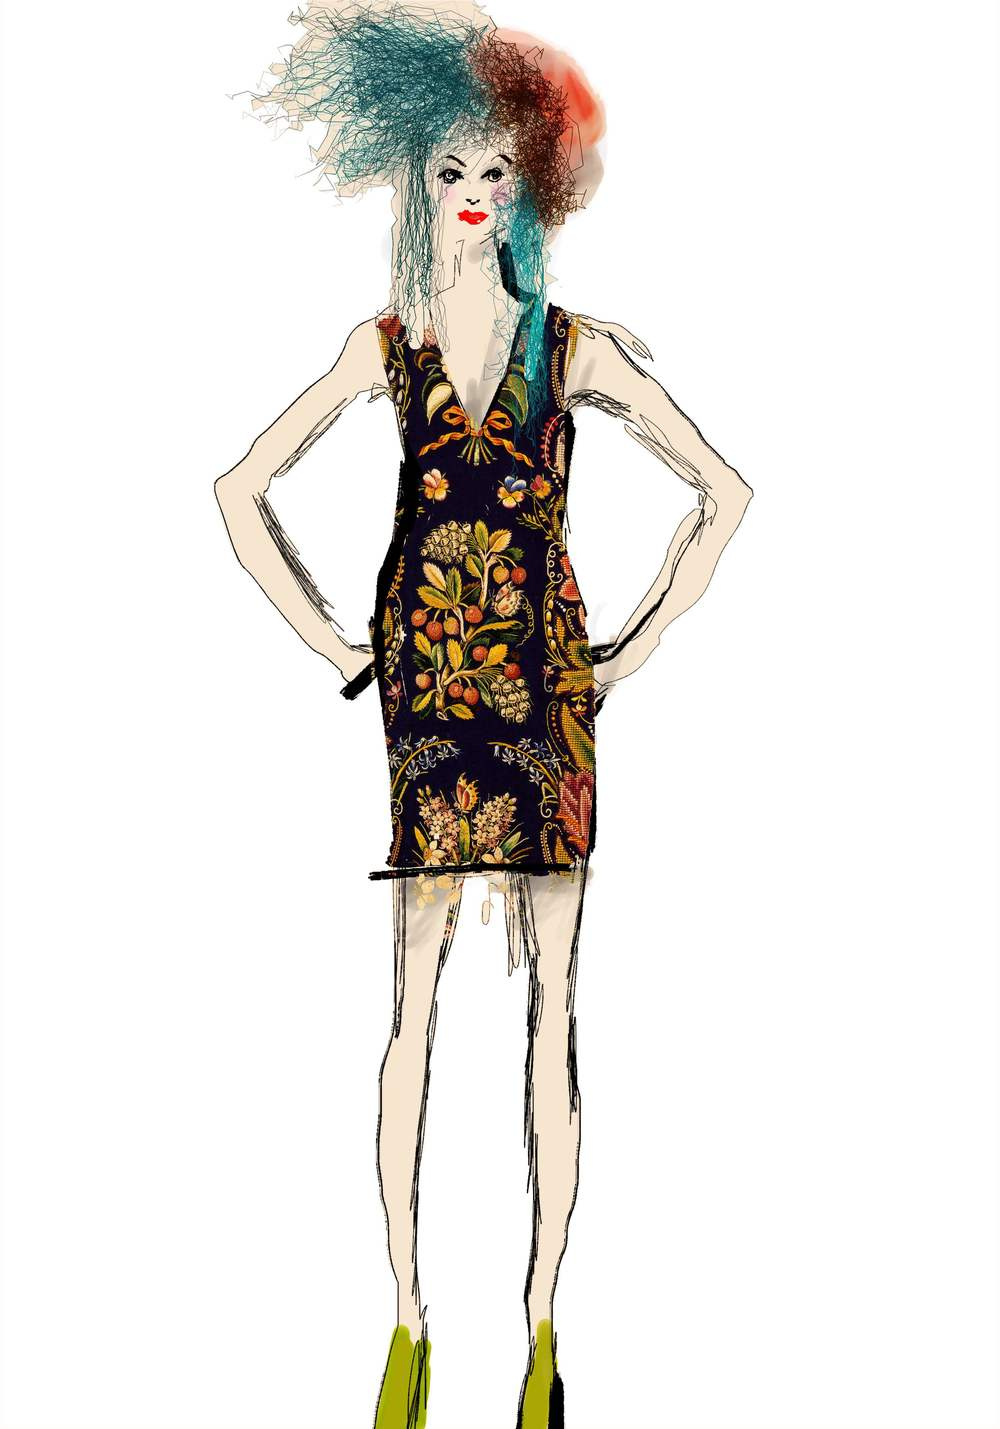 sketch courtesy of Christian Lacroix/ Desigual